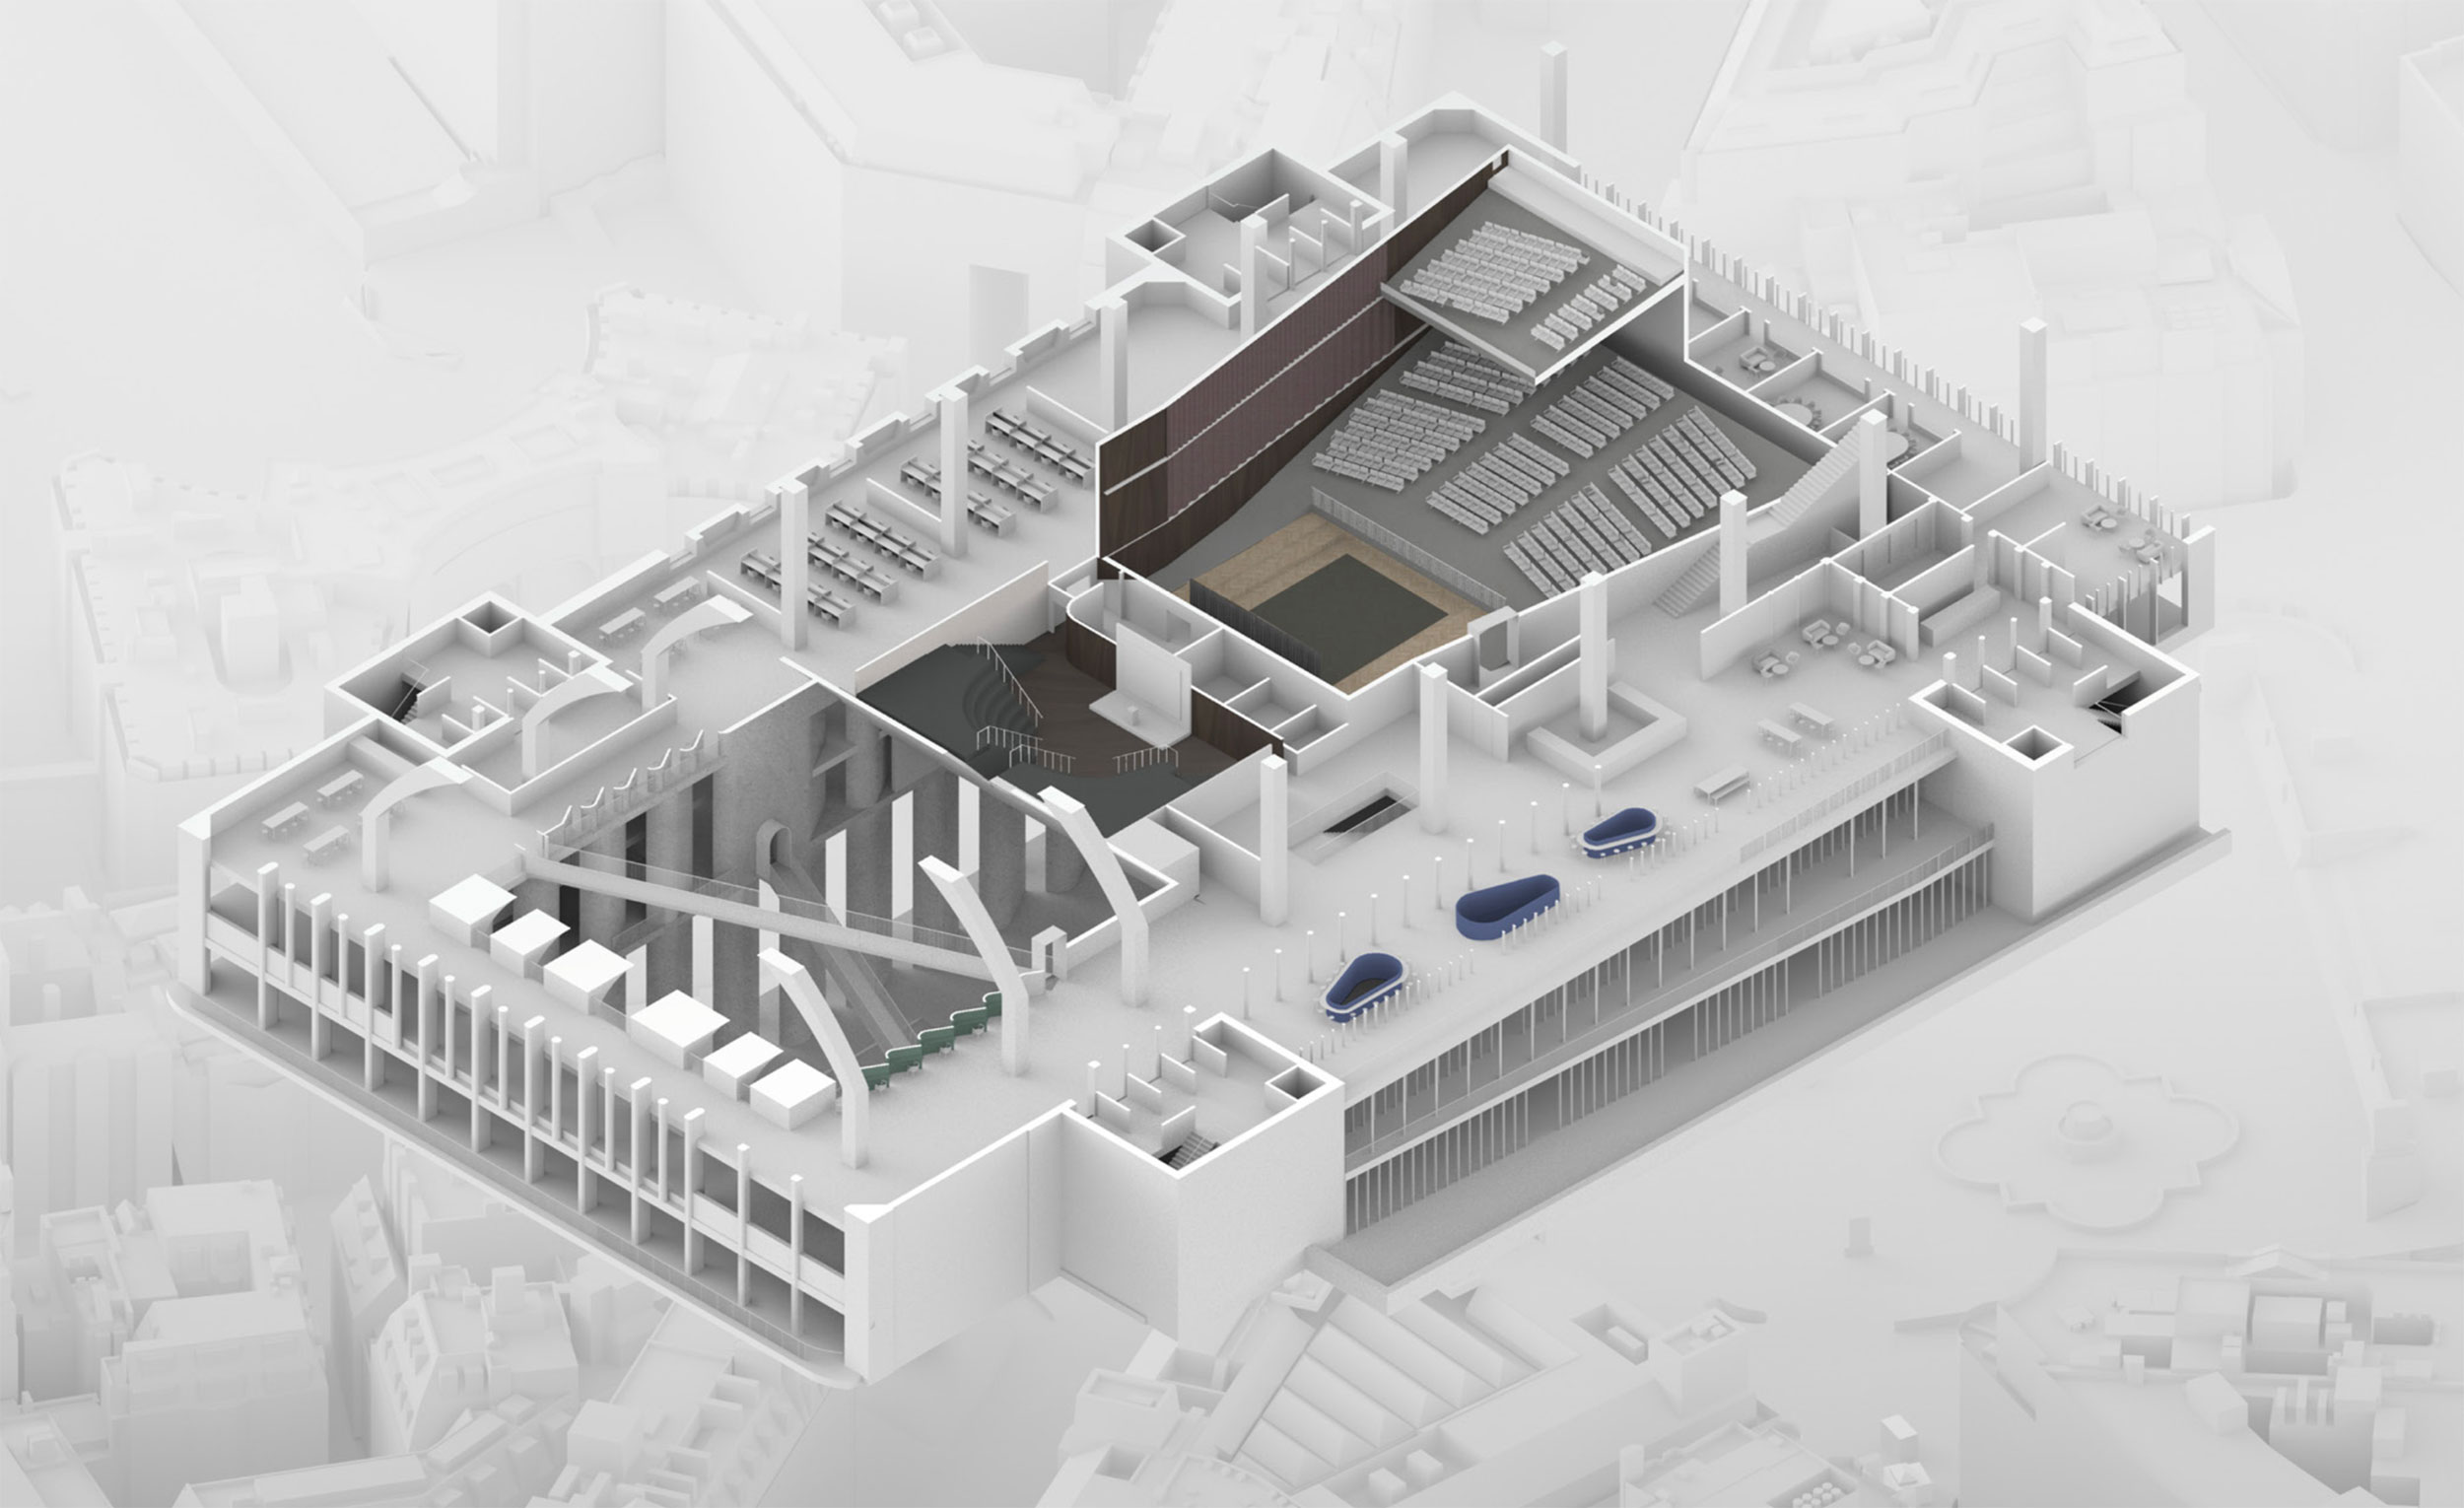 Upper floor axonometric section revealing the vaulted space above the main hall. Traditional and contemporary workspaces abut each other and surround spaces for learning.